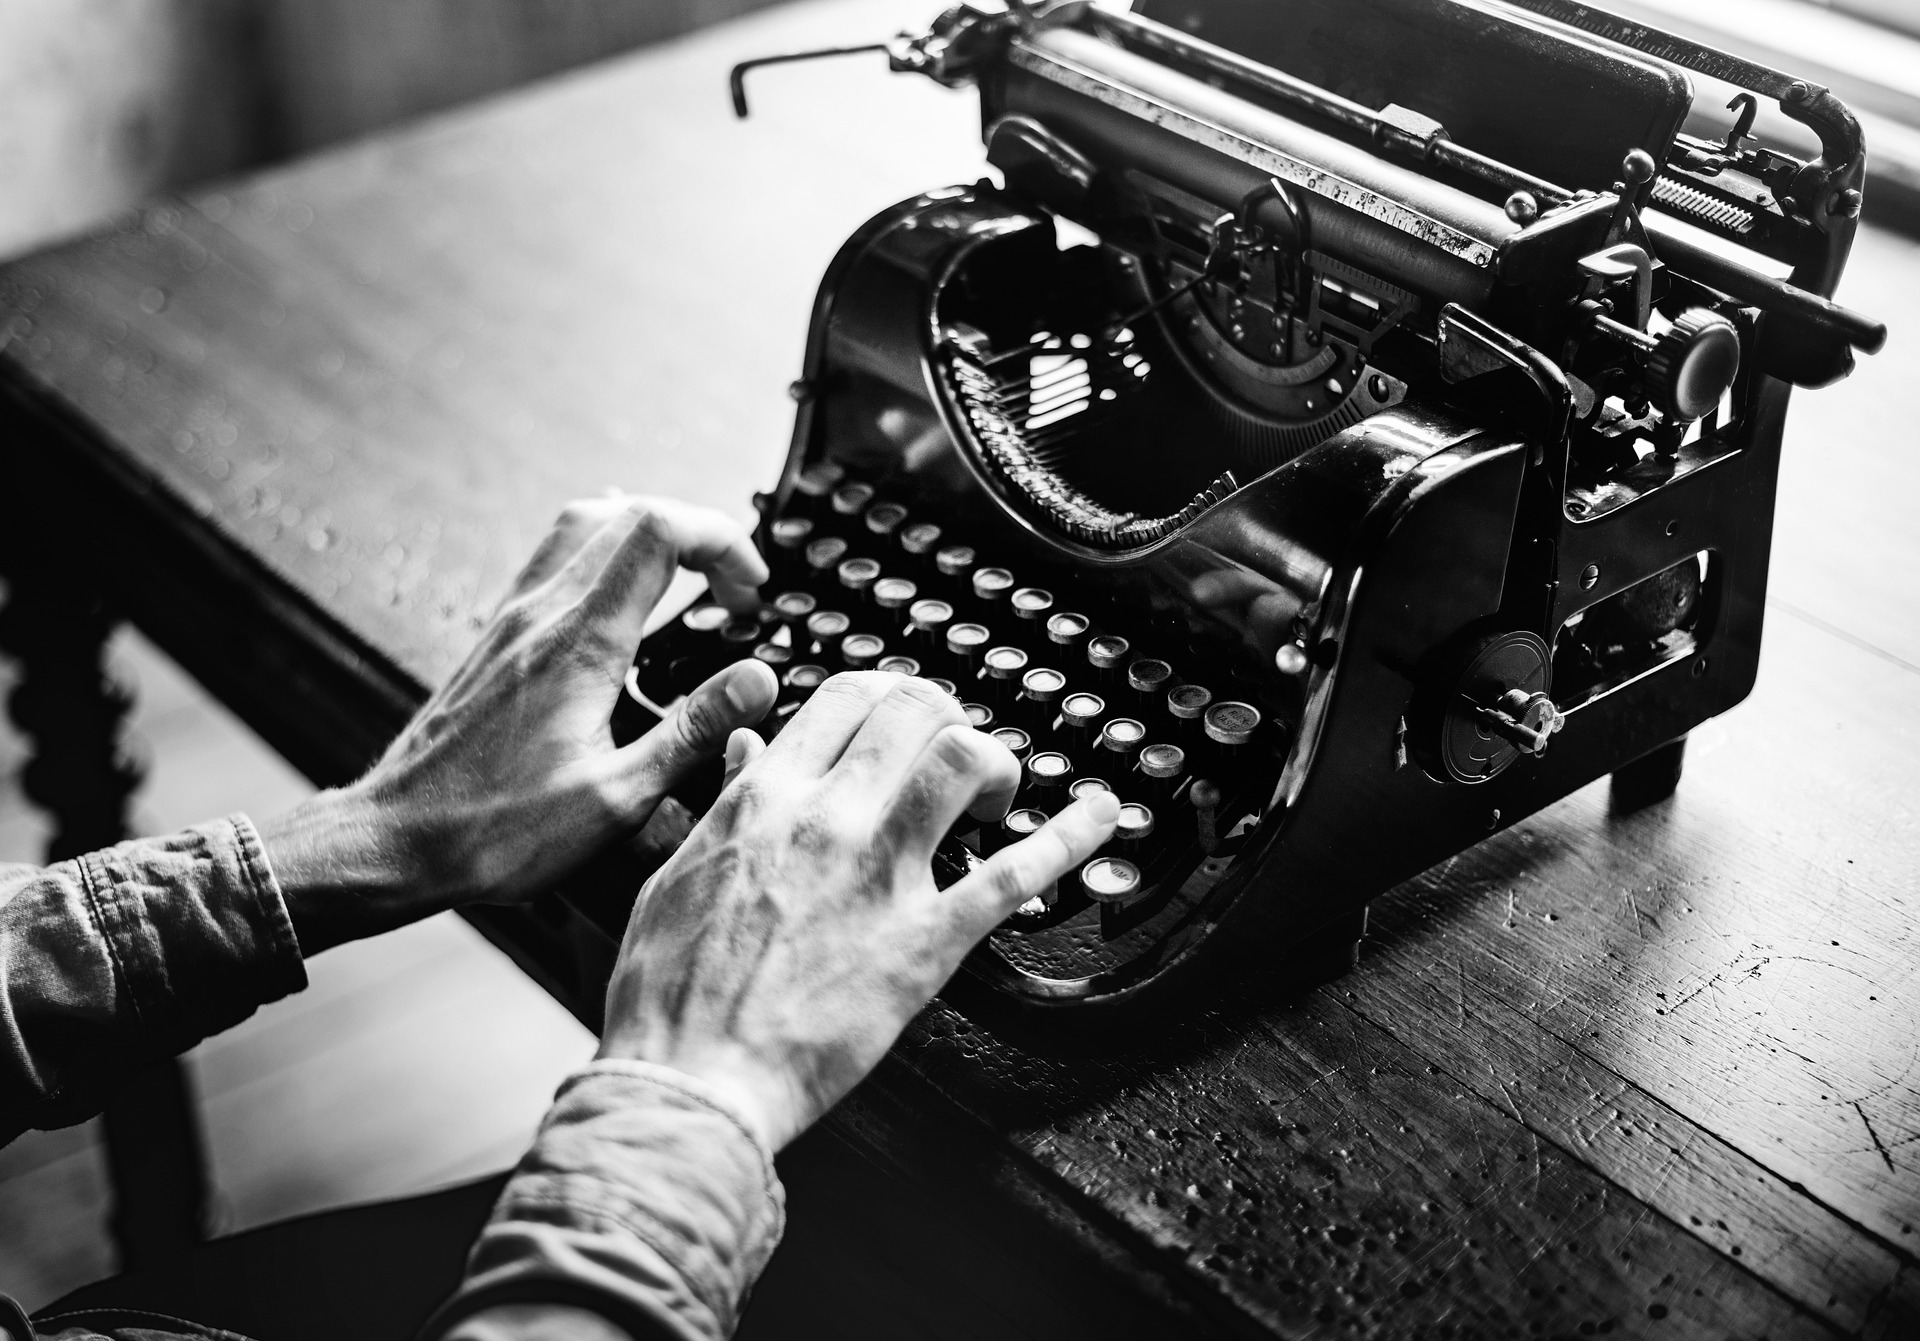 Therapeutic writing allows you to connect with feelings, share information in a way that's at your own pace, and even discover things about yourself that you didn't know before.